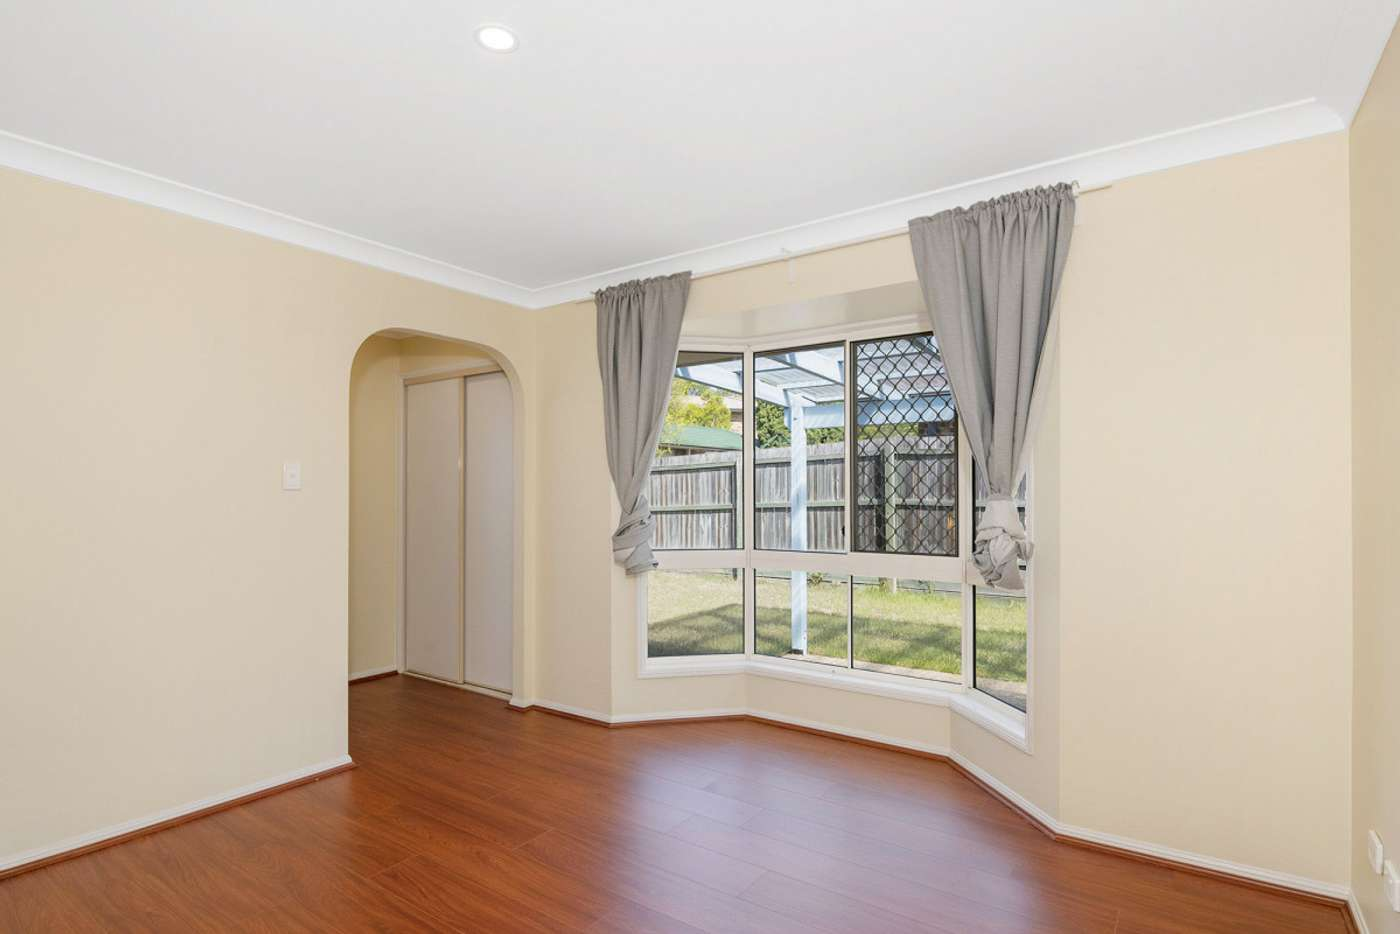 Sixth view of Homely house listing, 6 Allarton Street, Coopers Plains QLD 4108